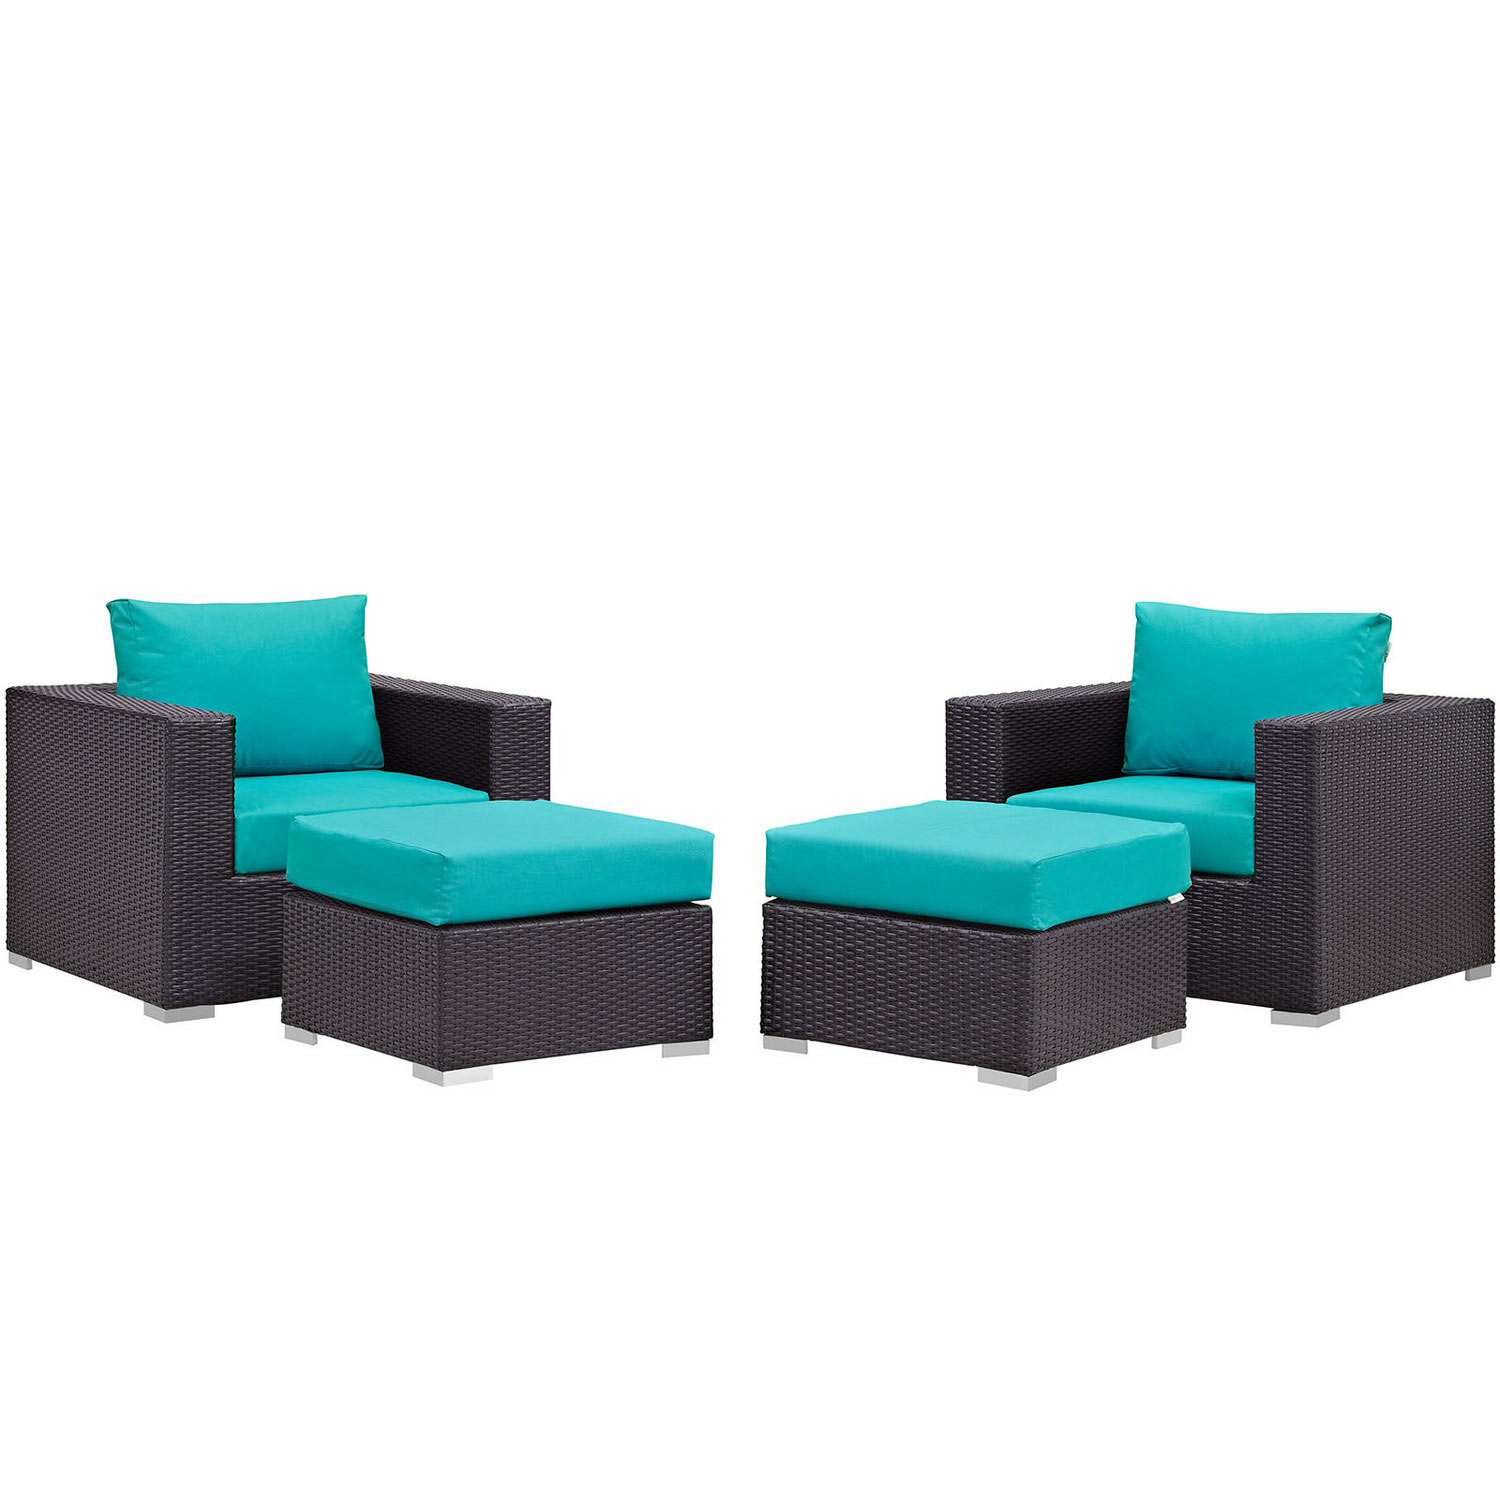 Modway Convene 4 Piece Outdoor Patio Sectional Set - Espresso Turquoise